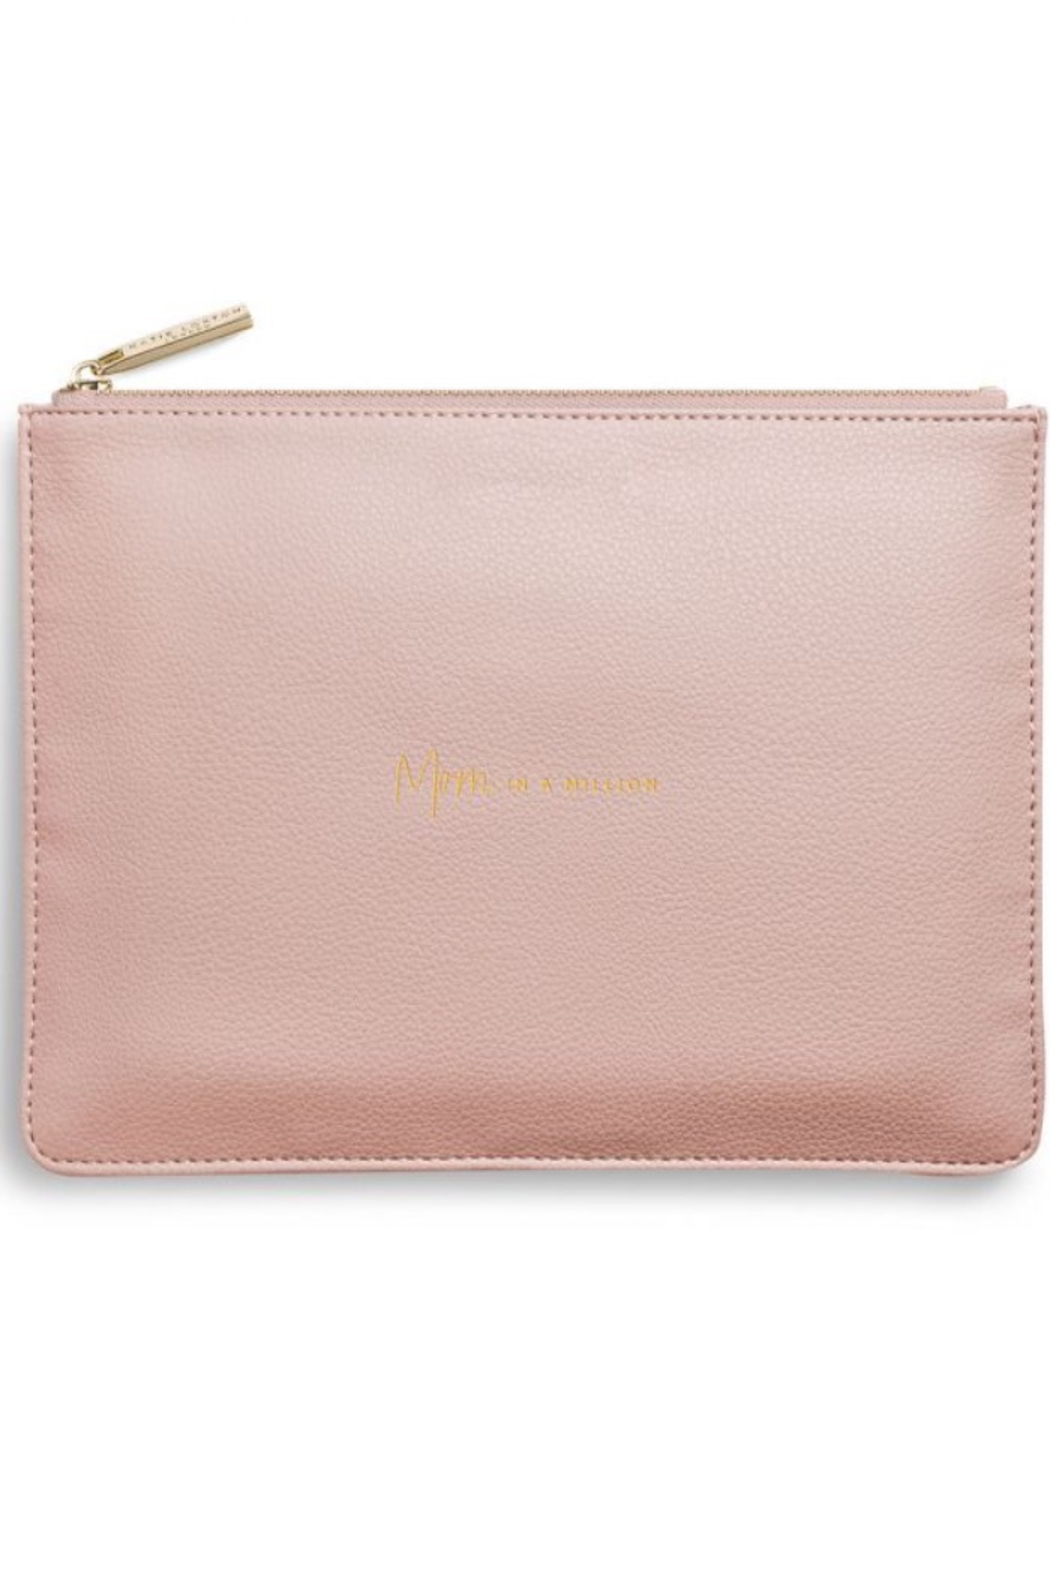 Katie Loxton Mom In A Million Pouch - Main Image